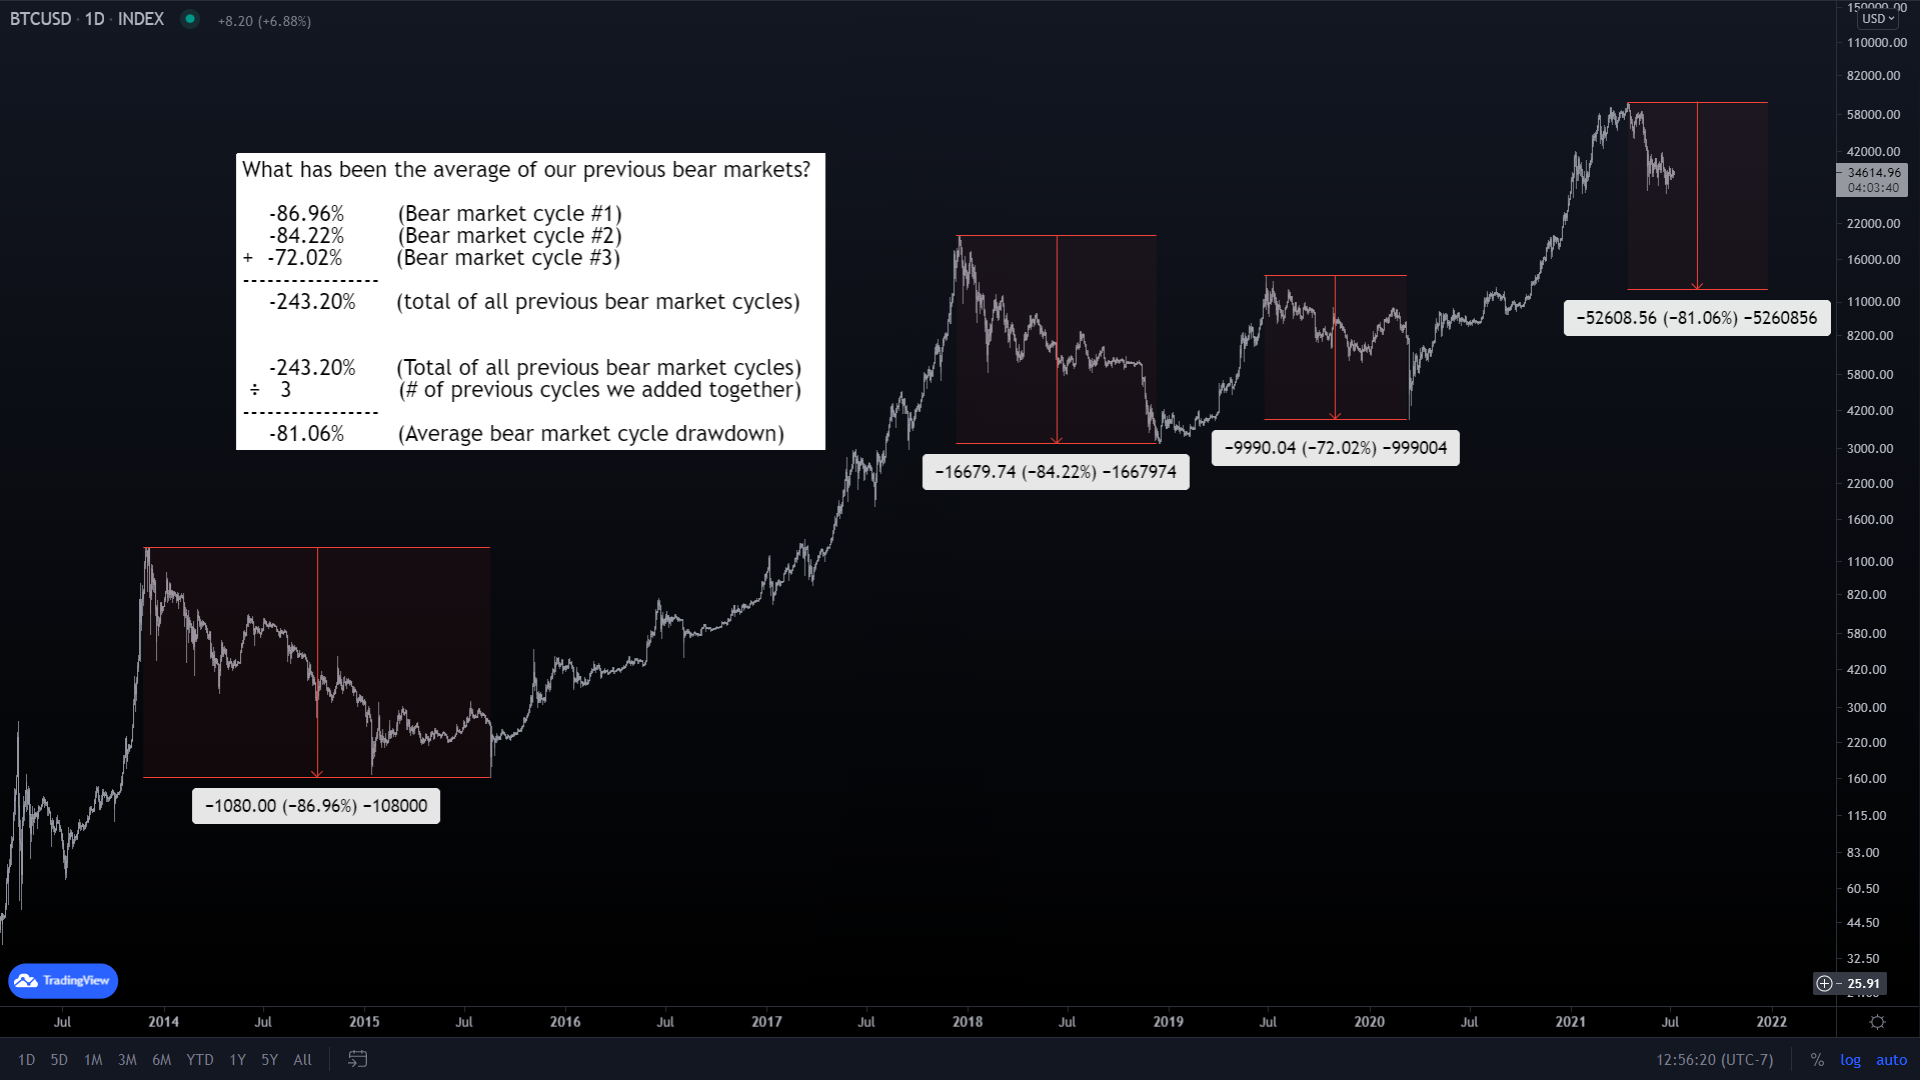 How to figure out the previous drawdowns of past Bitcoin bear market cycles